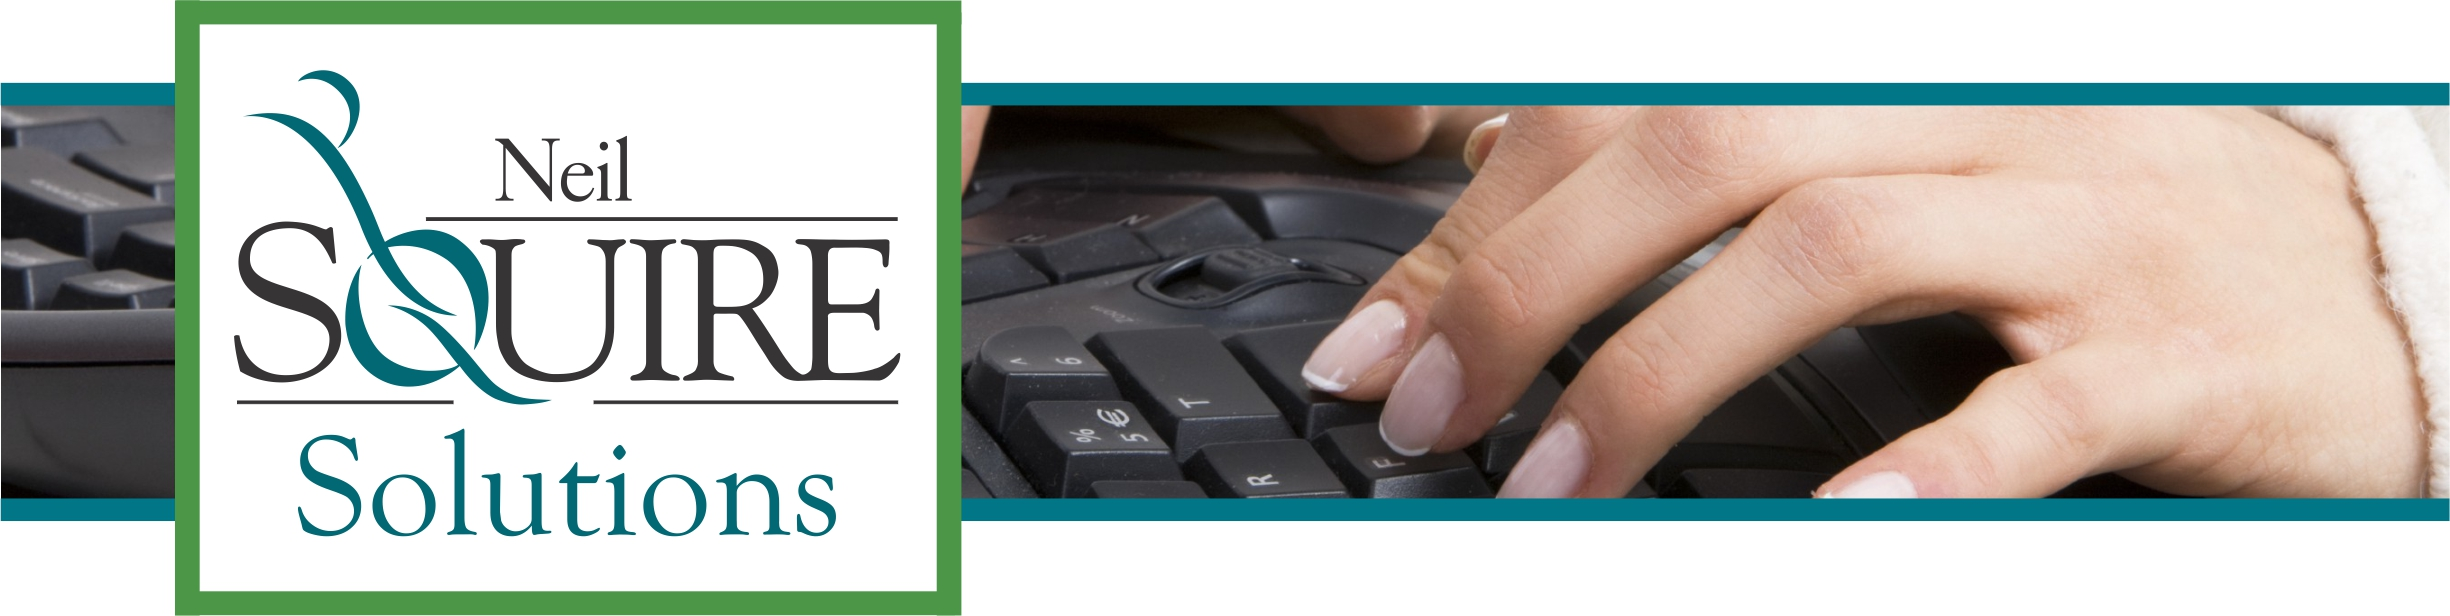 Neil Squire Solutions Logo and hands on a keyboard